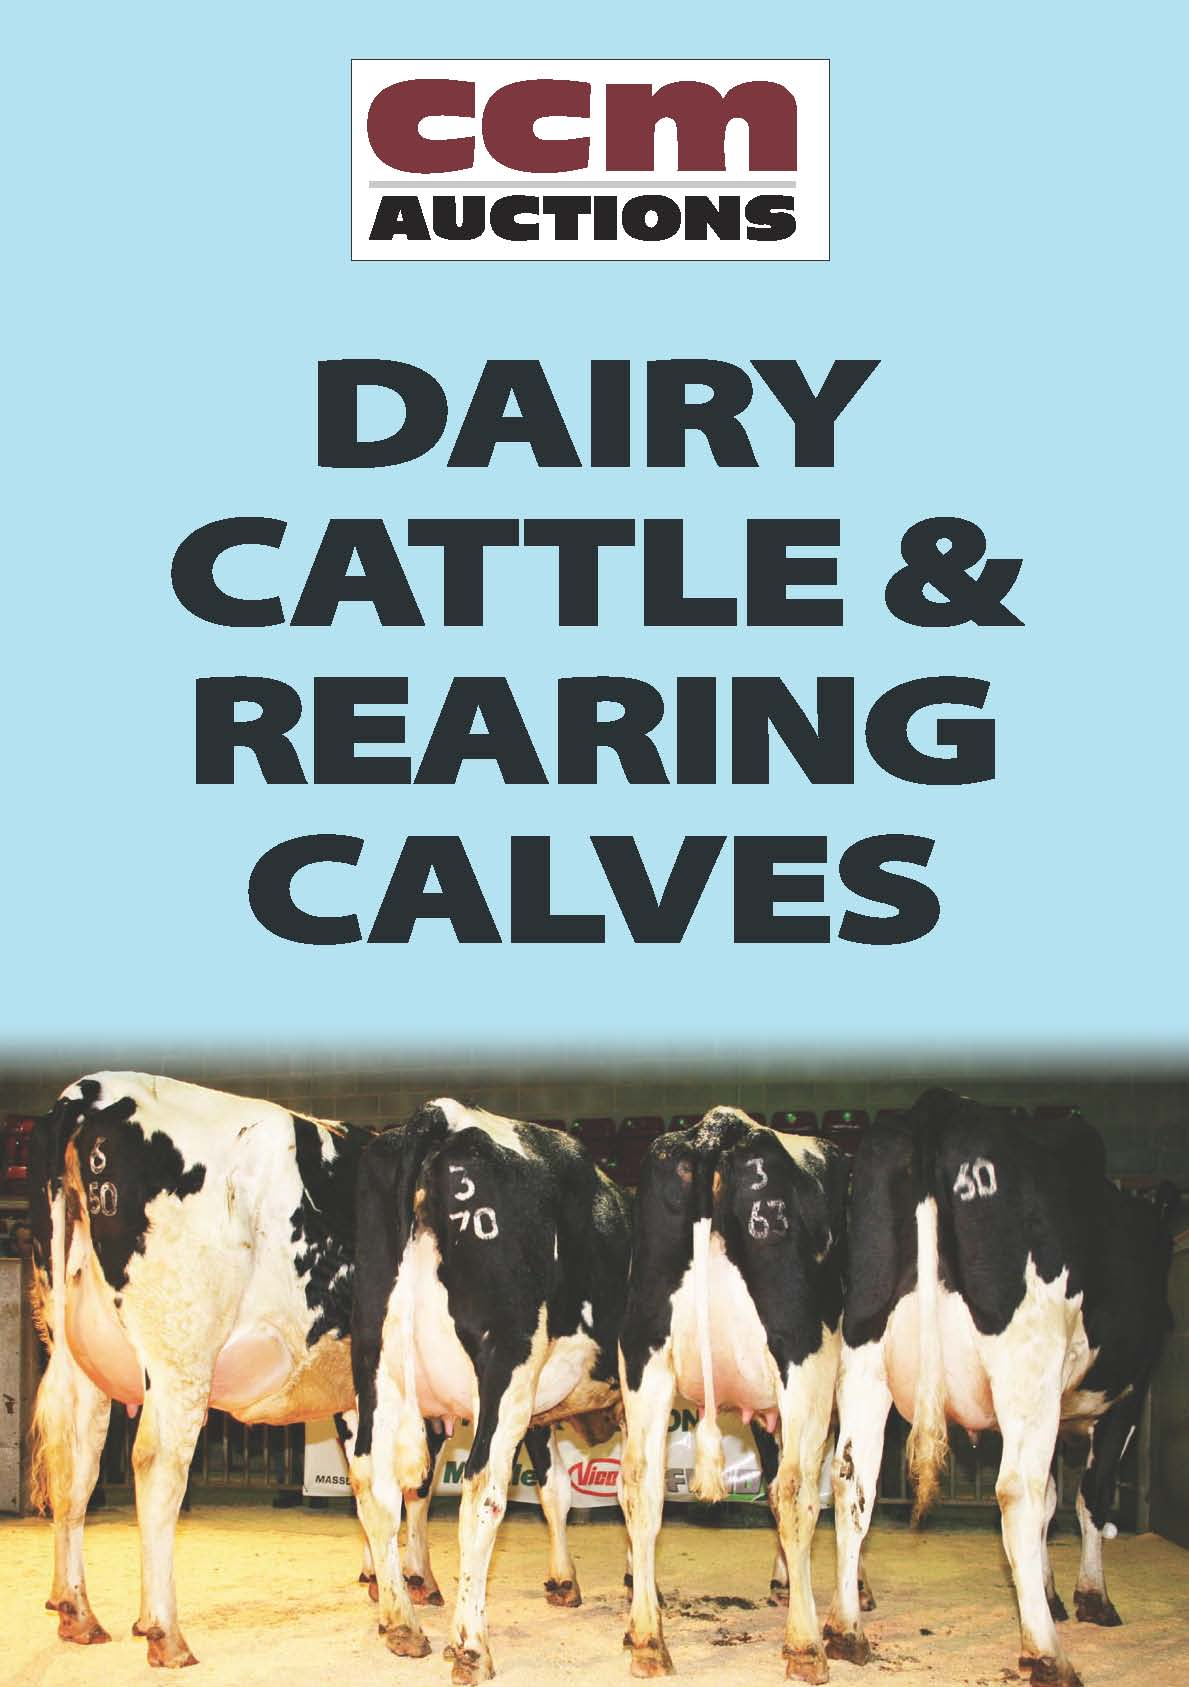 CRAVEN DAIRY PRESS - MONDAY 28TH OCTOBER 2019